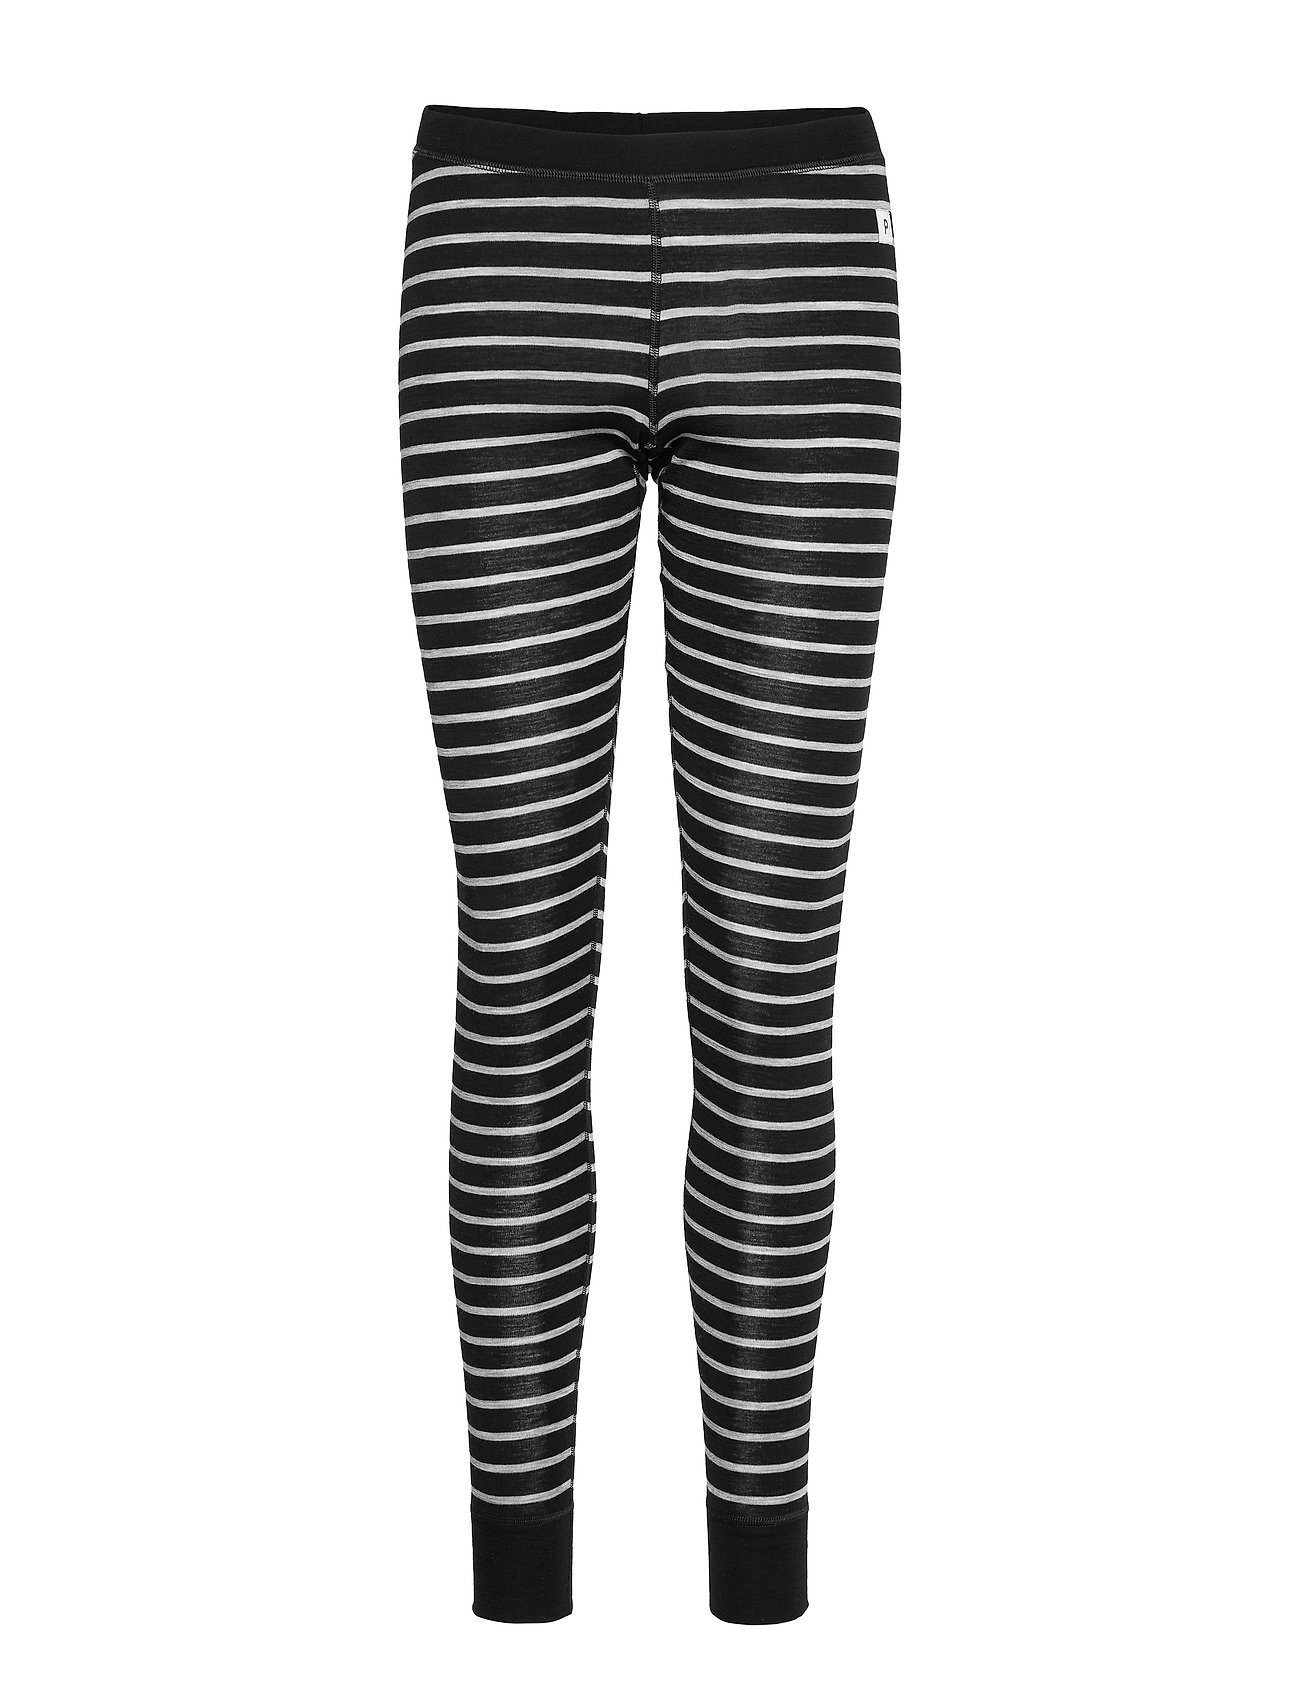 Polarn O. Pyret Long Johns Striped Adult - BLACK